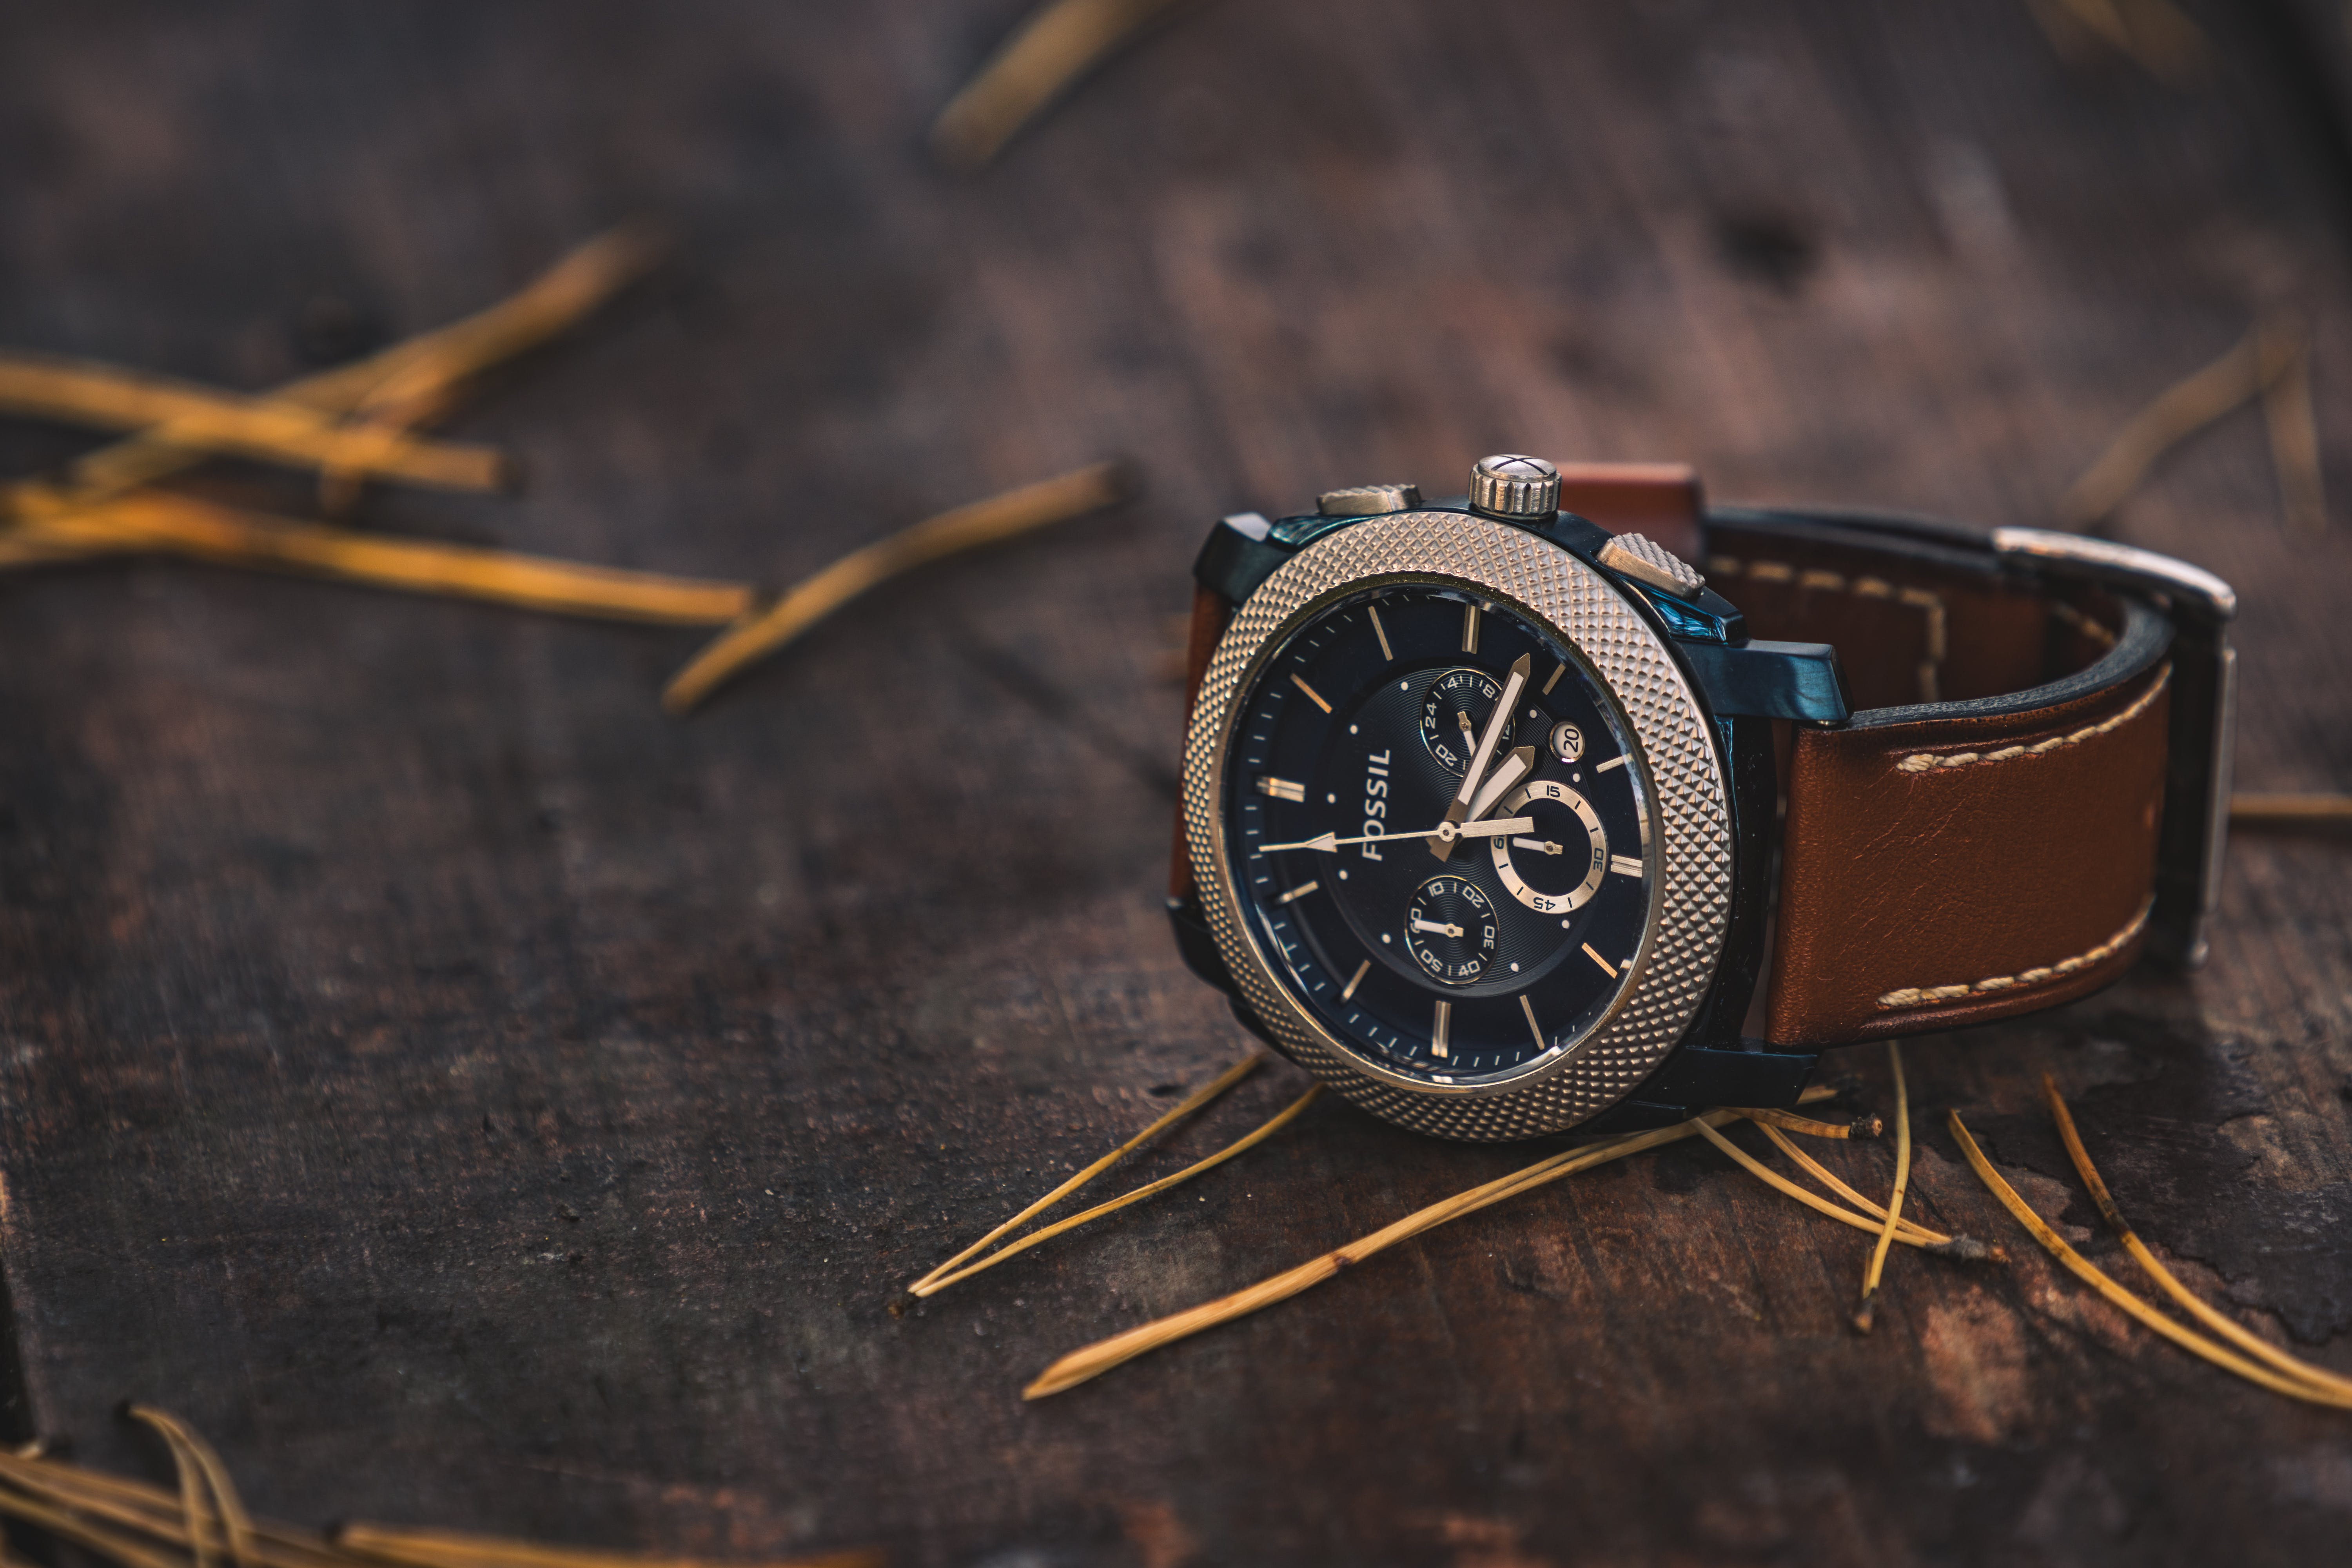 Round Silver Colored Fossil Chronograph Watch With Brown Leather Band On Brown Wooden Surface